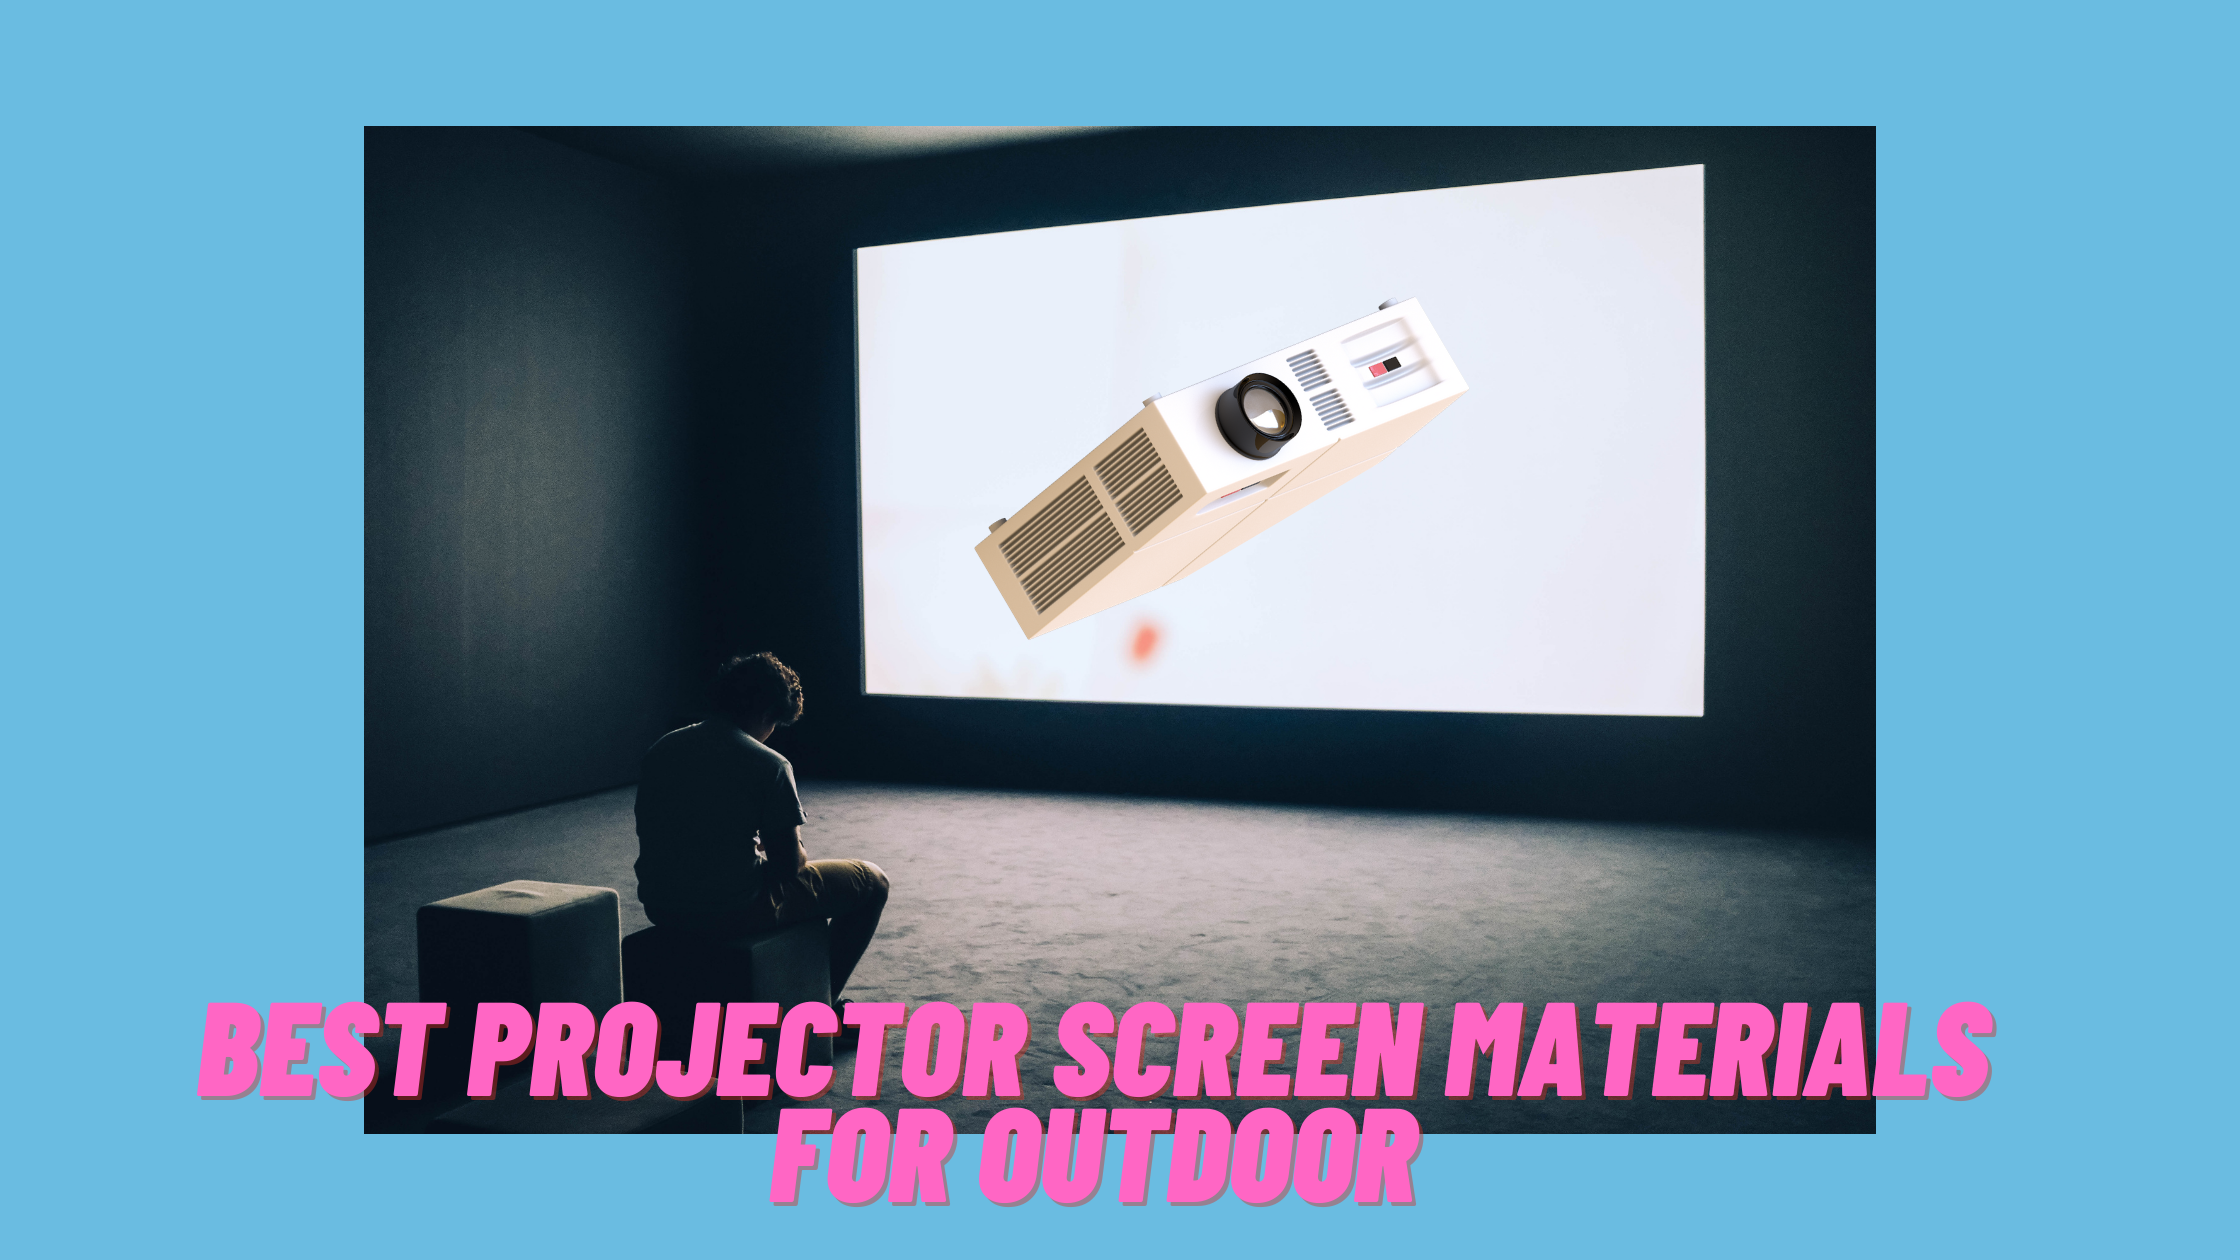 Image for Projector Screen Materials For Outdoor